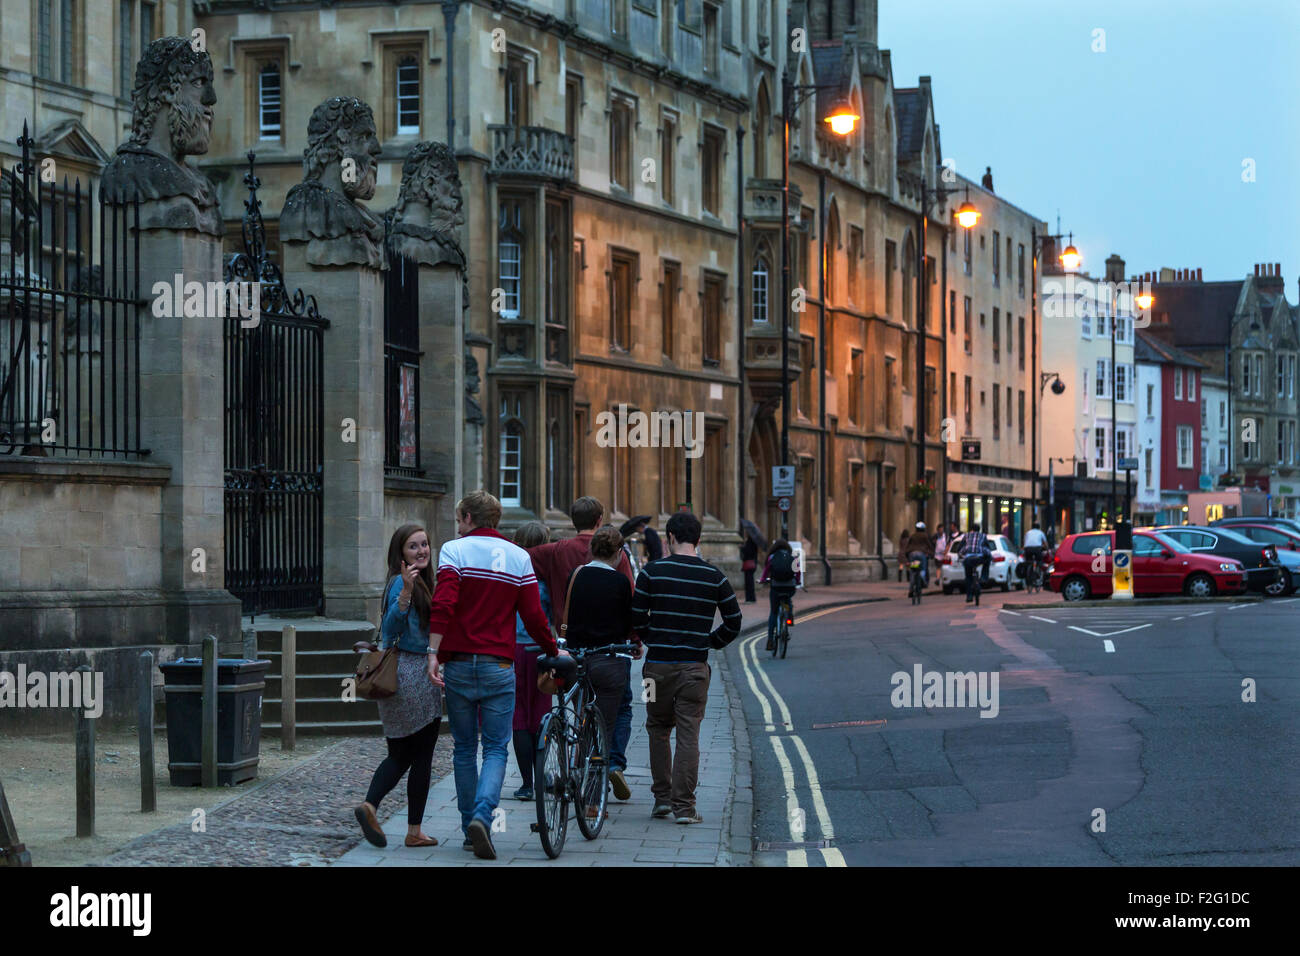 01.06.2012, Oxford, South East England, United Kingdom - Students in the streets of the Old Town, left the Museum - Stock Image